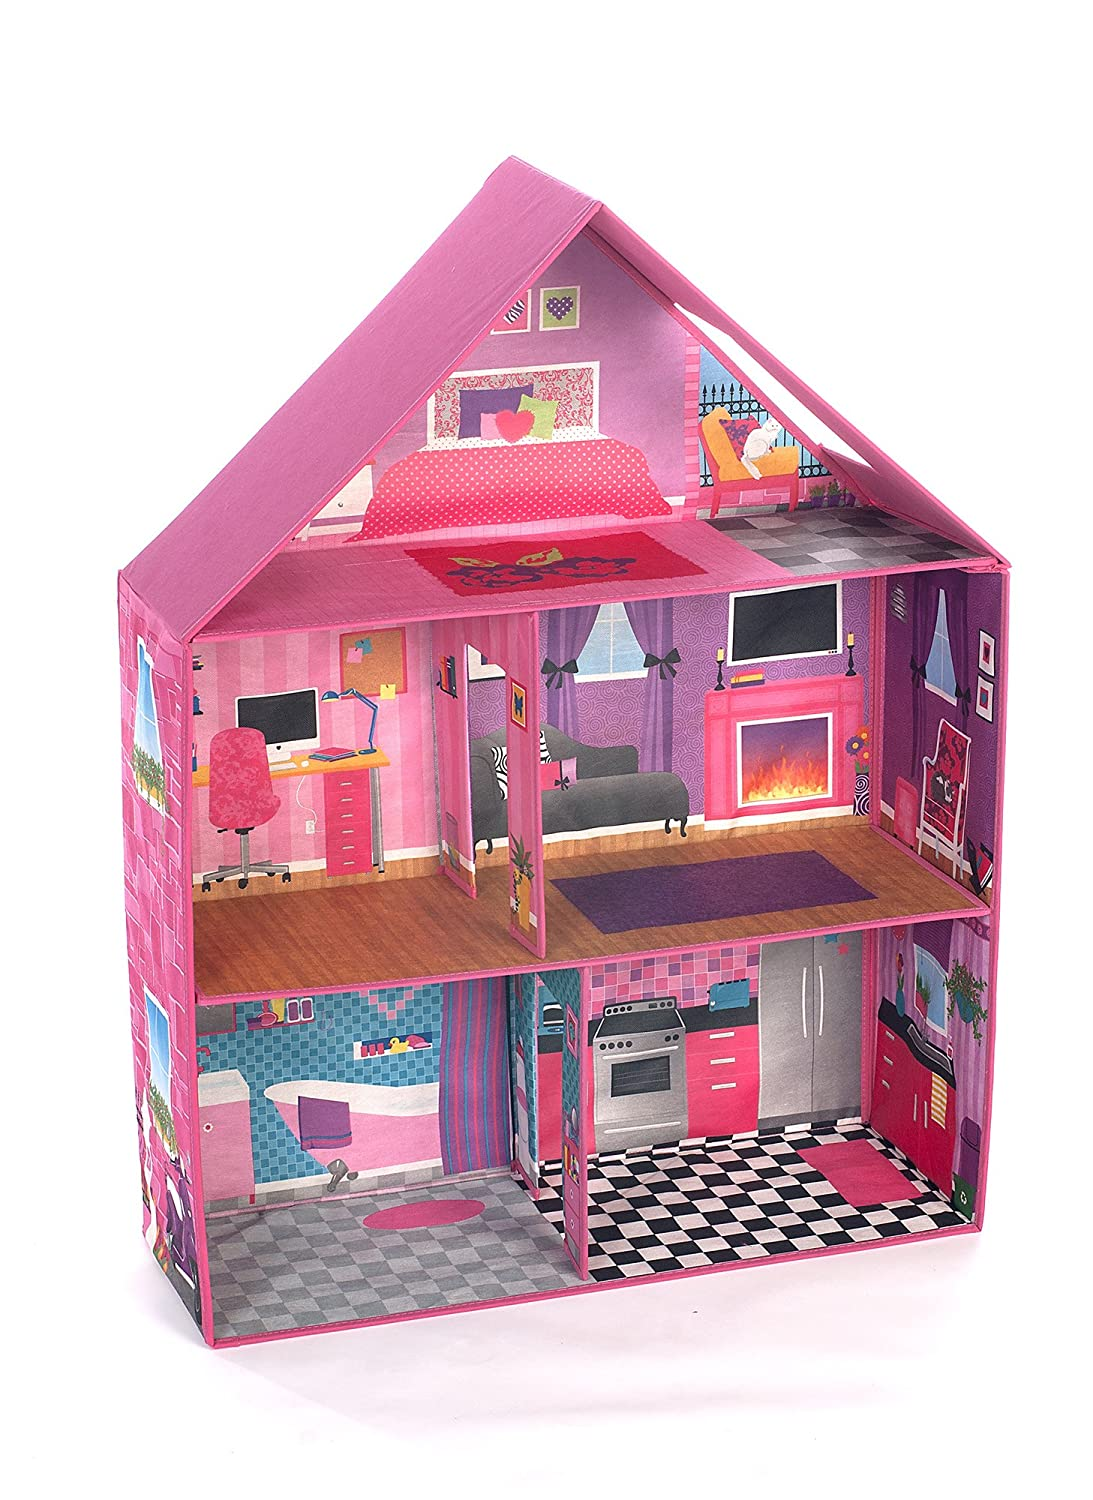 Modern Pink Barbie Dream House Home Play Room Set Girls Toy Doll